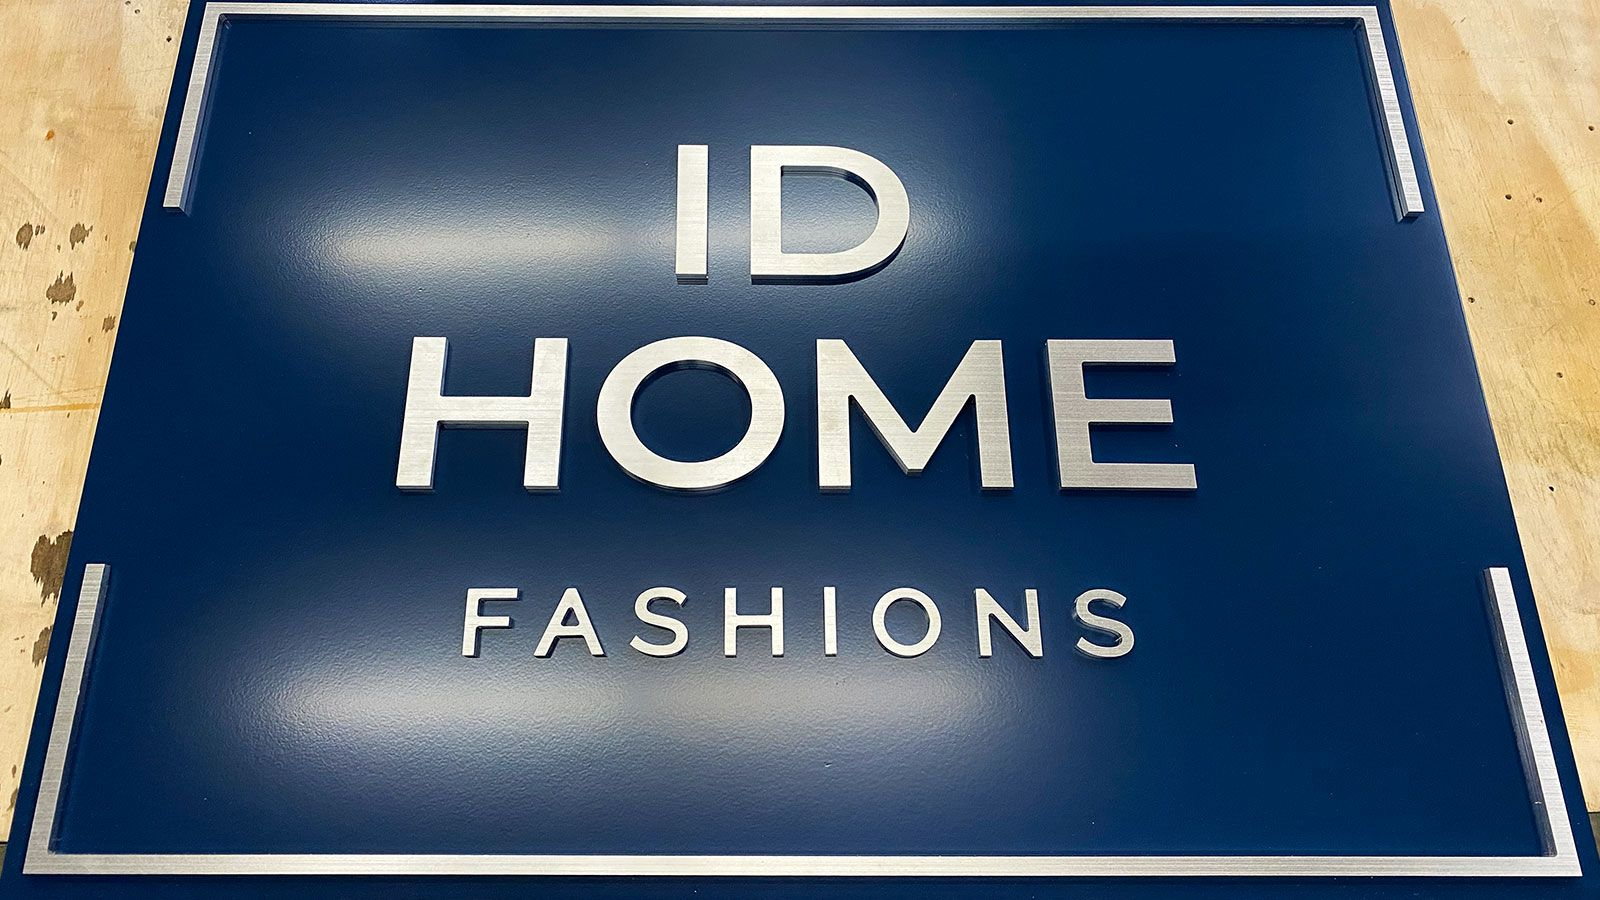 ID home 3d letters